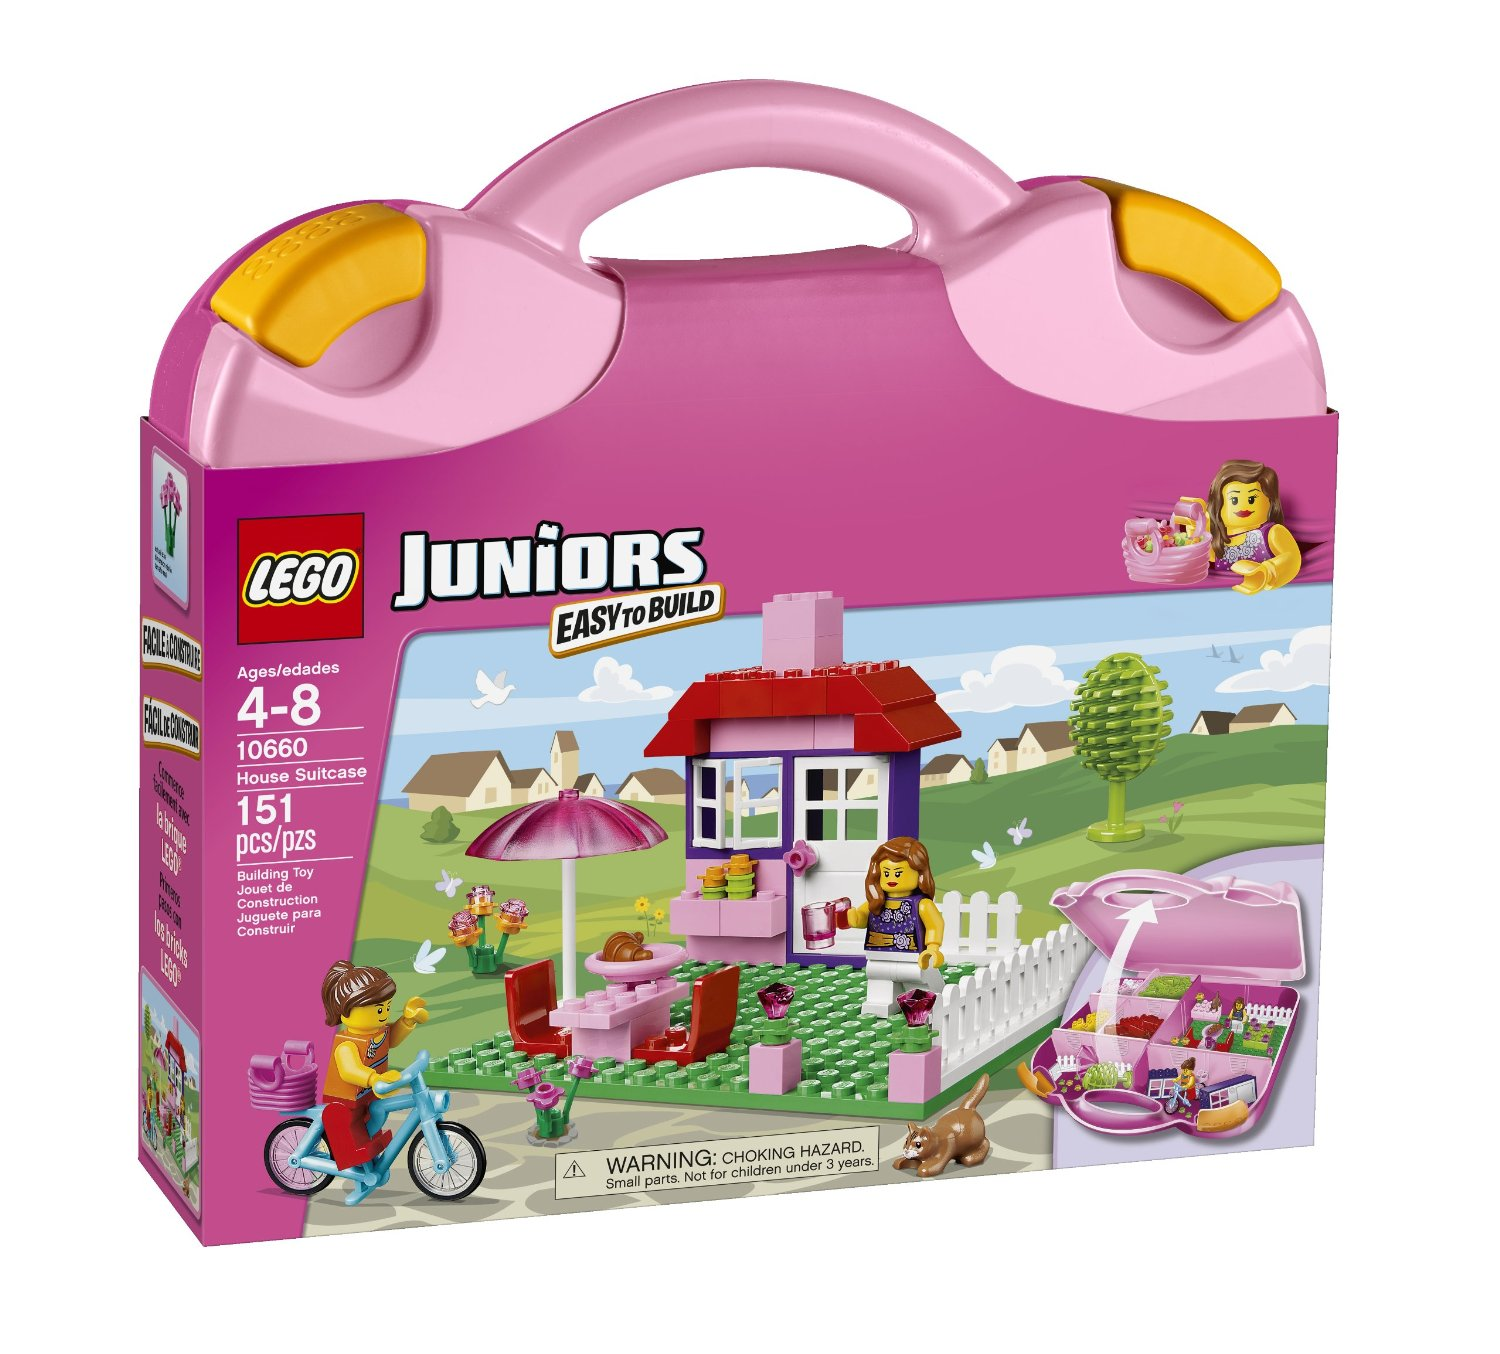 LEGO Juniors 10660 House Suitcase